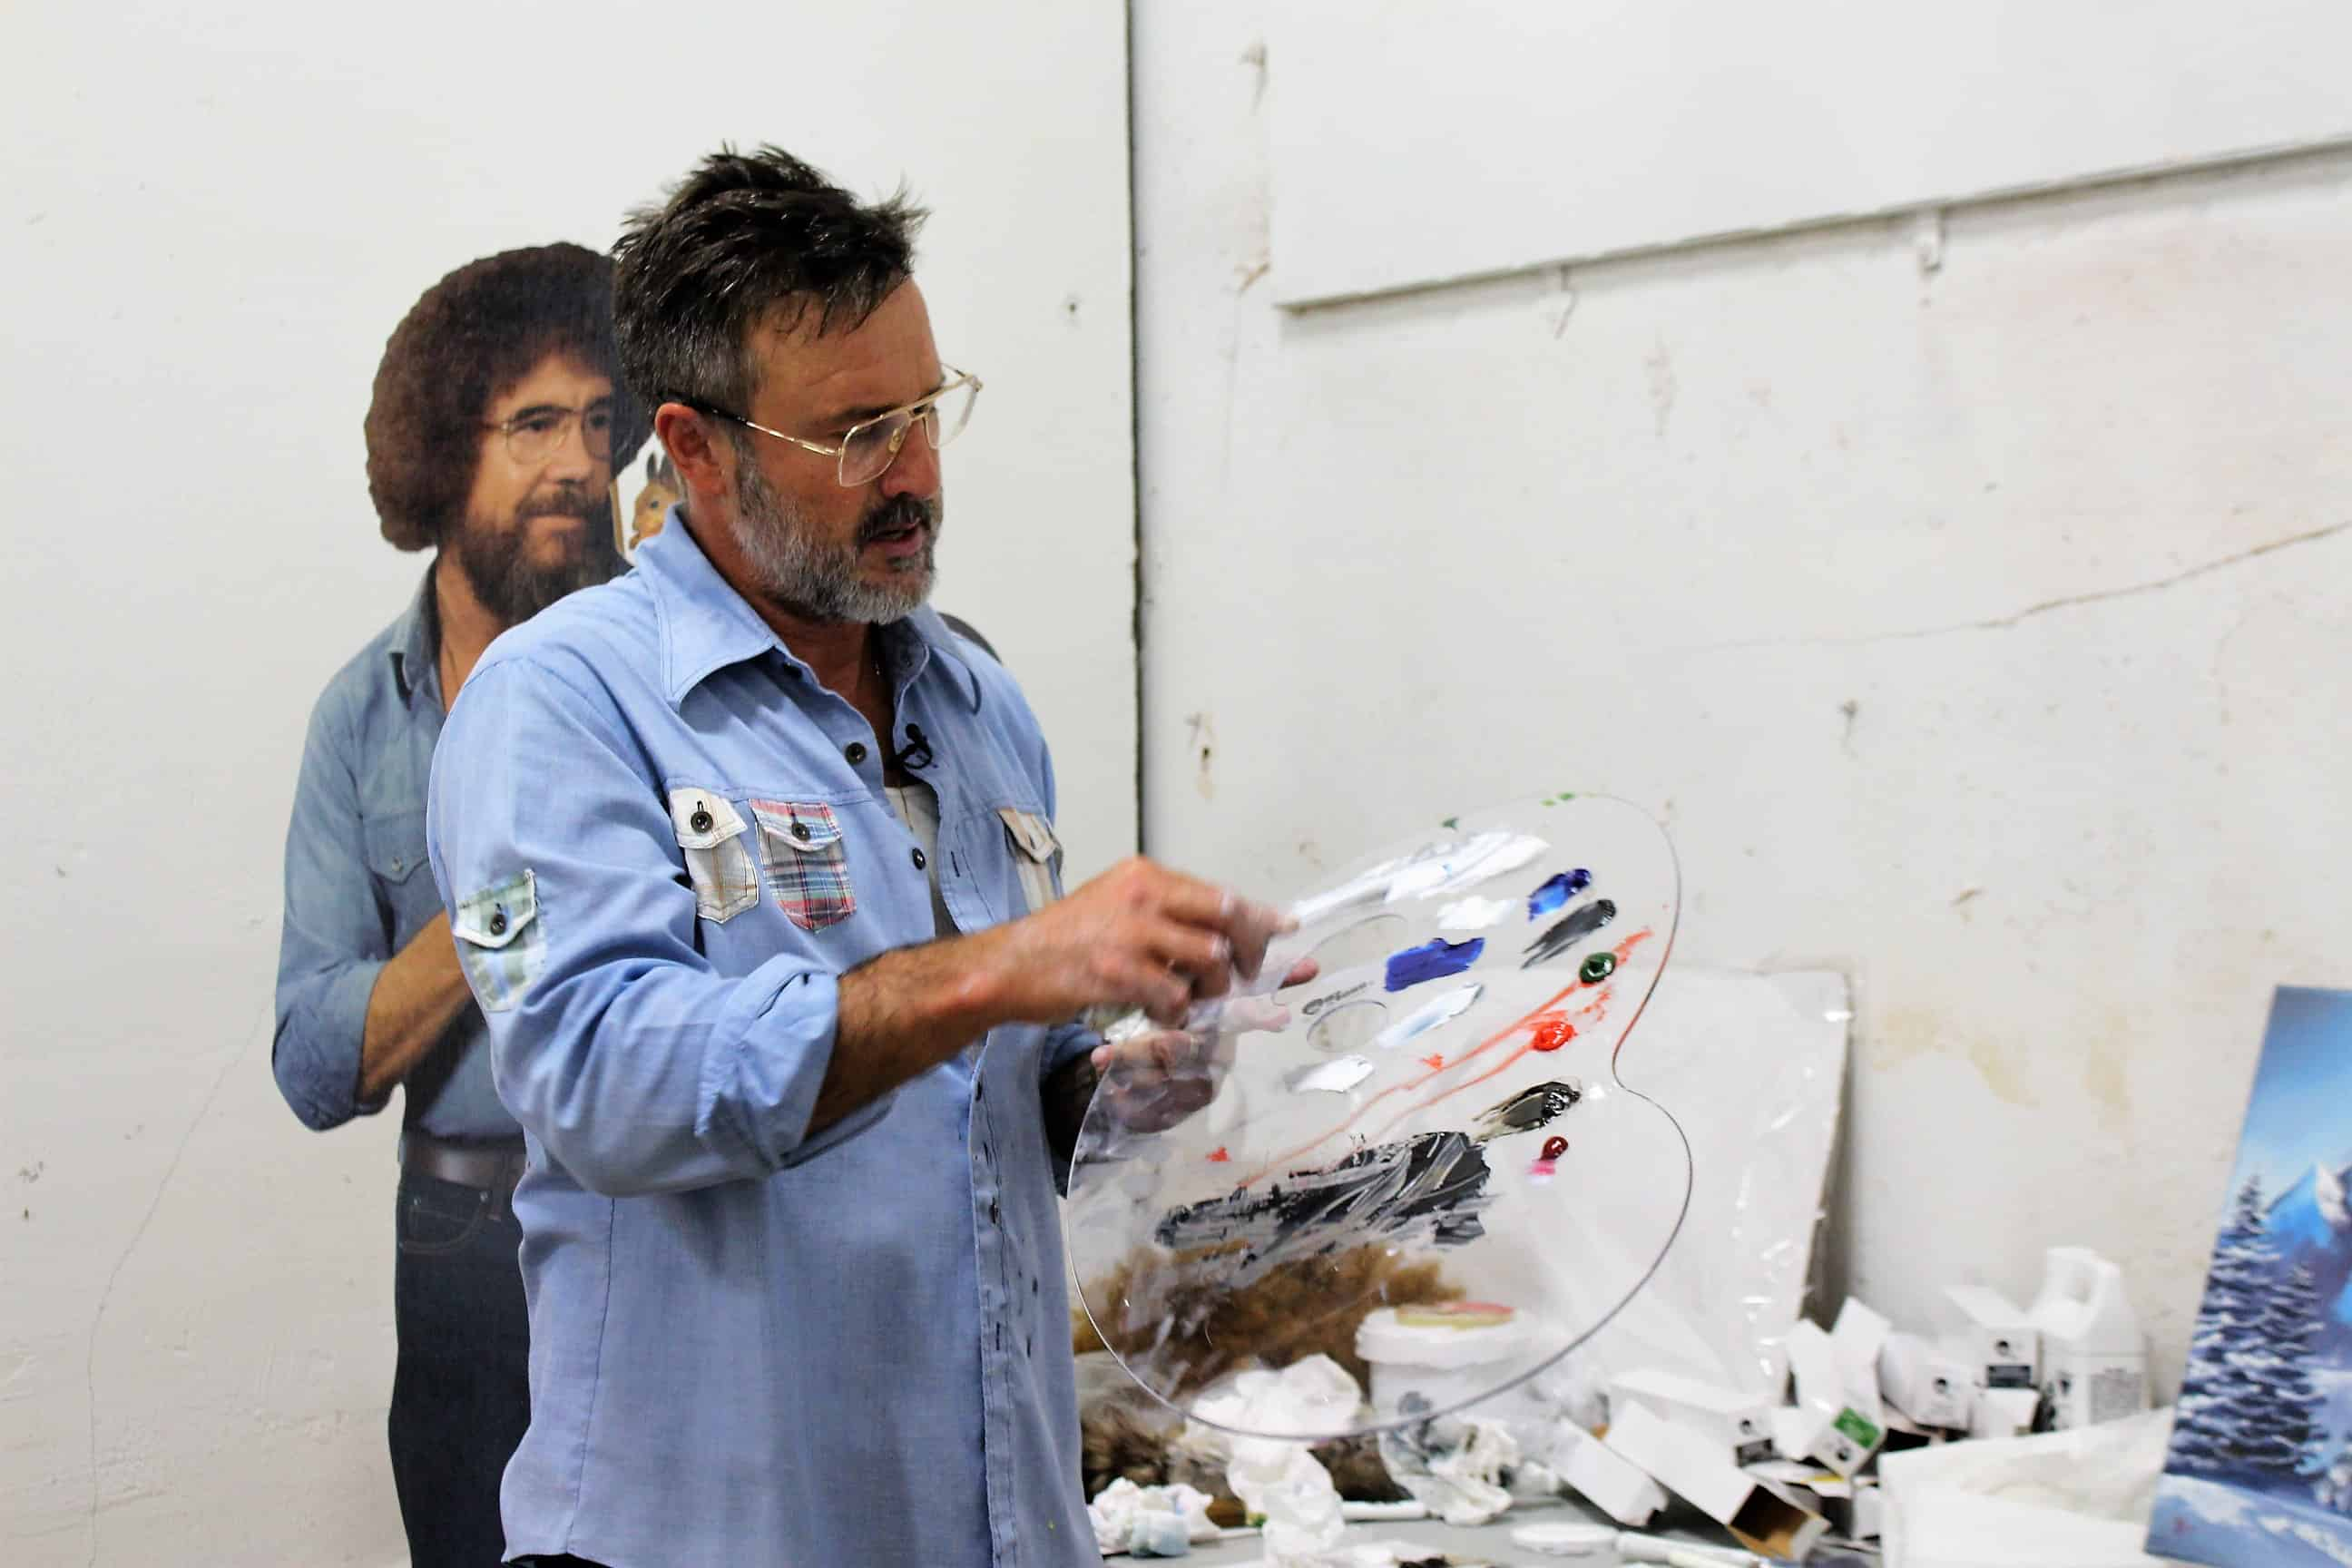 Is David Arquette the new Bob Ross?